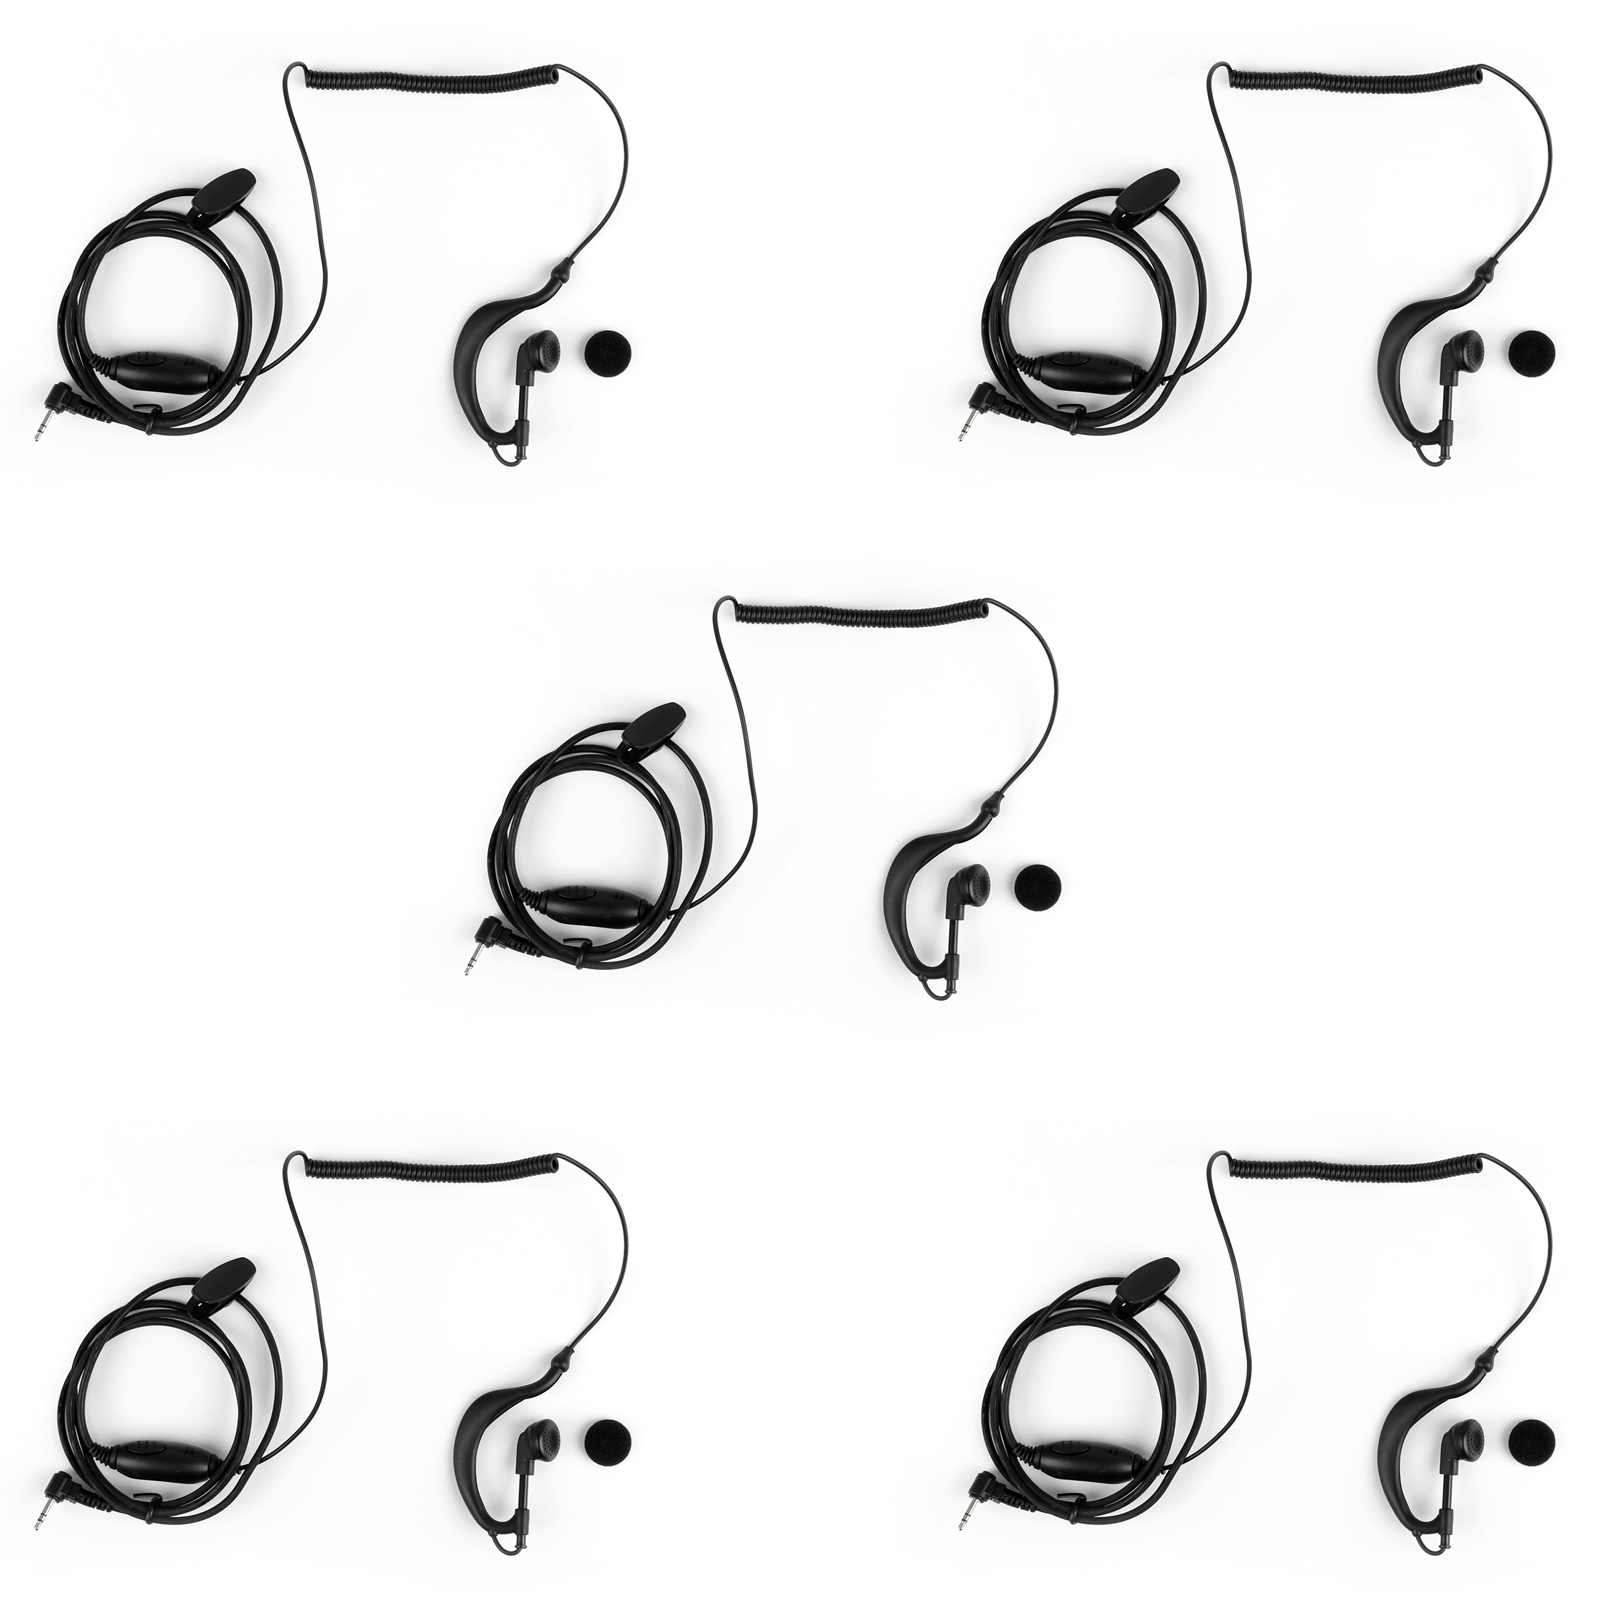 5pcs 2 5mm G Shape Curve Earpiece Headset Ptt For Motorola